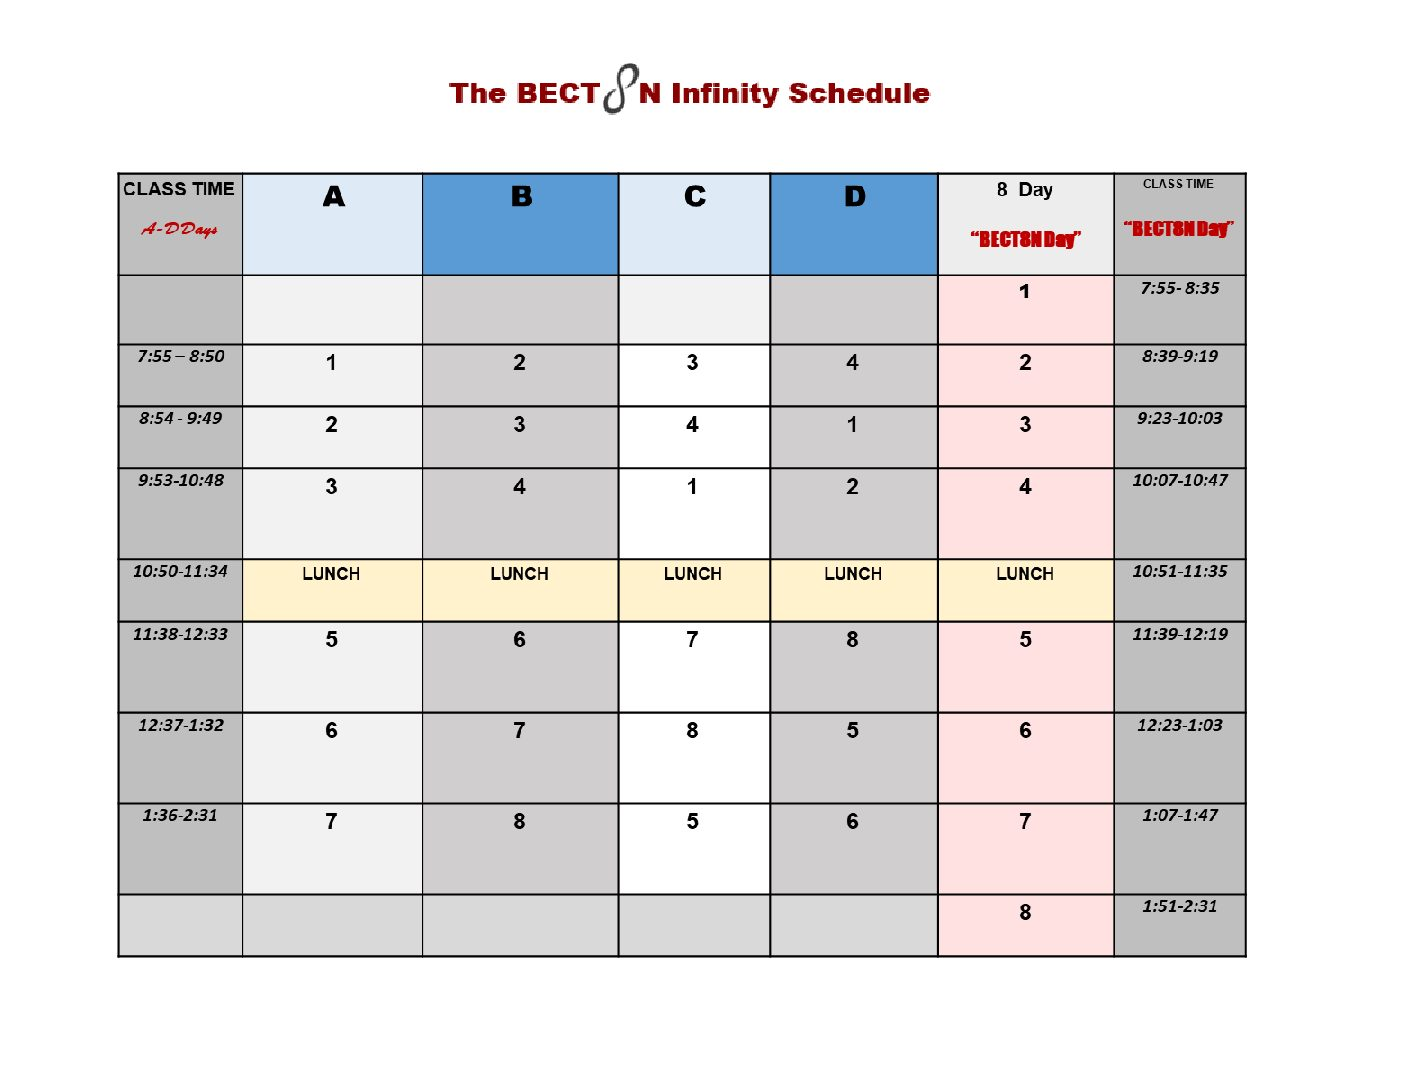 The BECT8N Infinity Schedule and an earlier start time will both be implemented for the 2018-2019 school year.